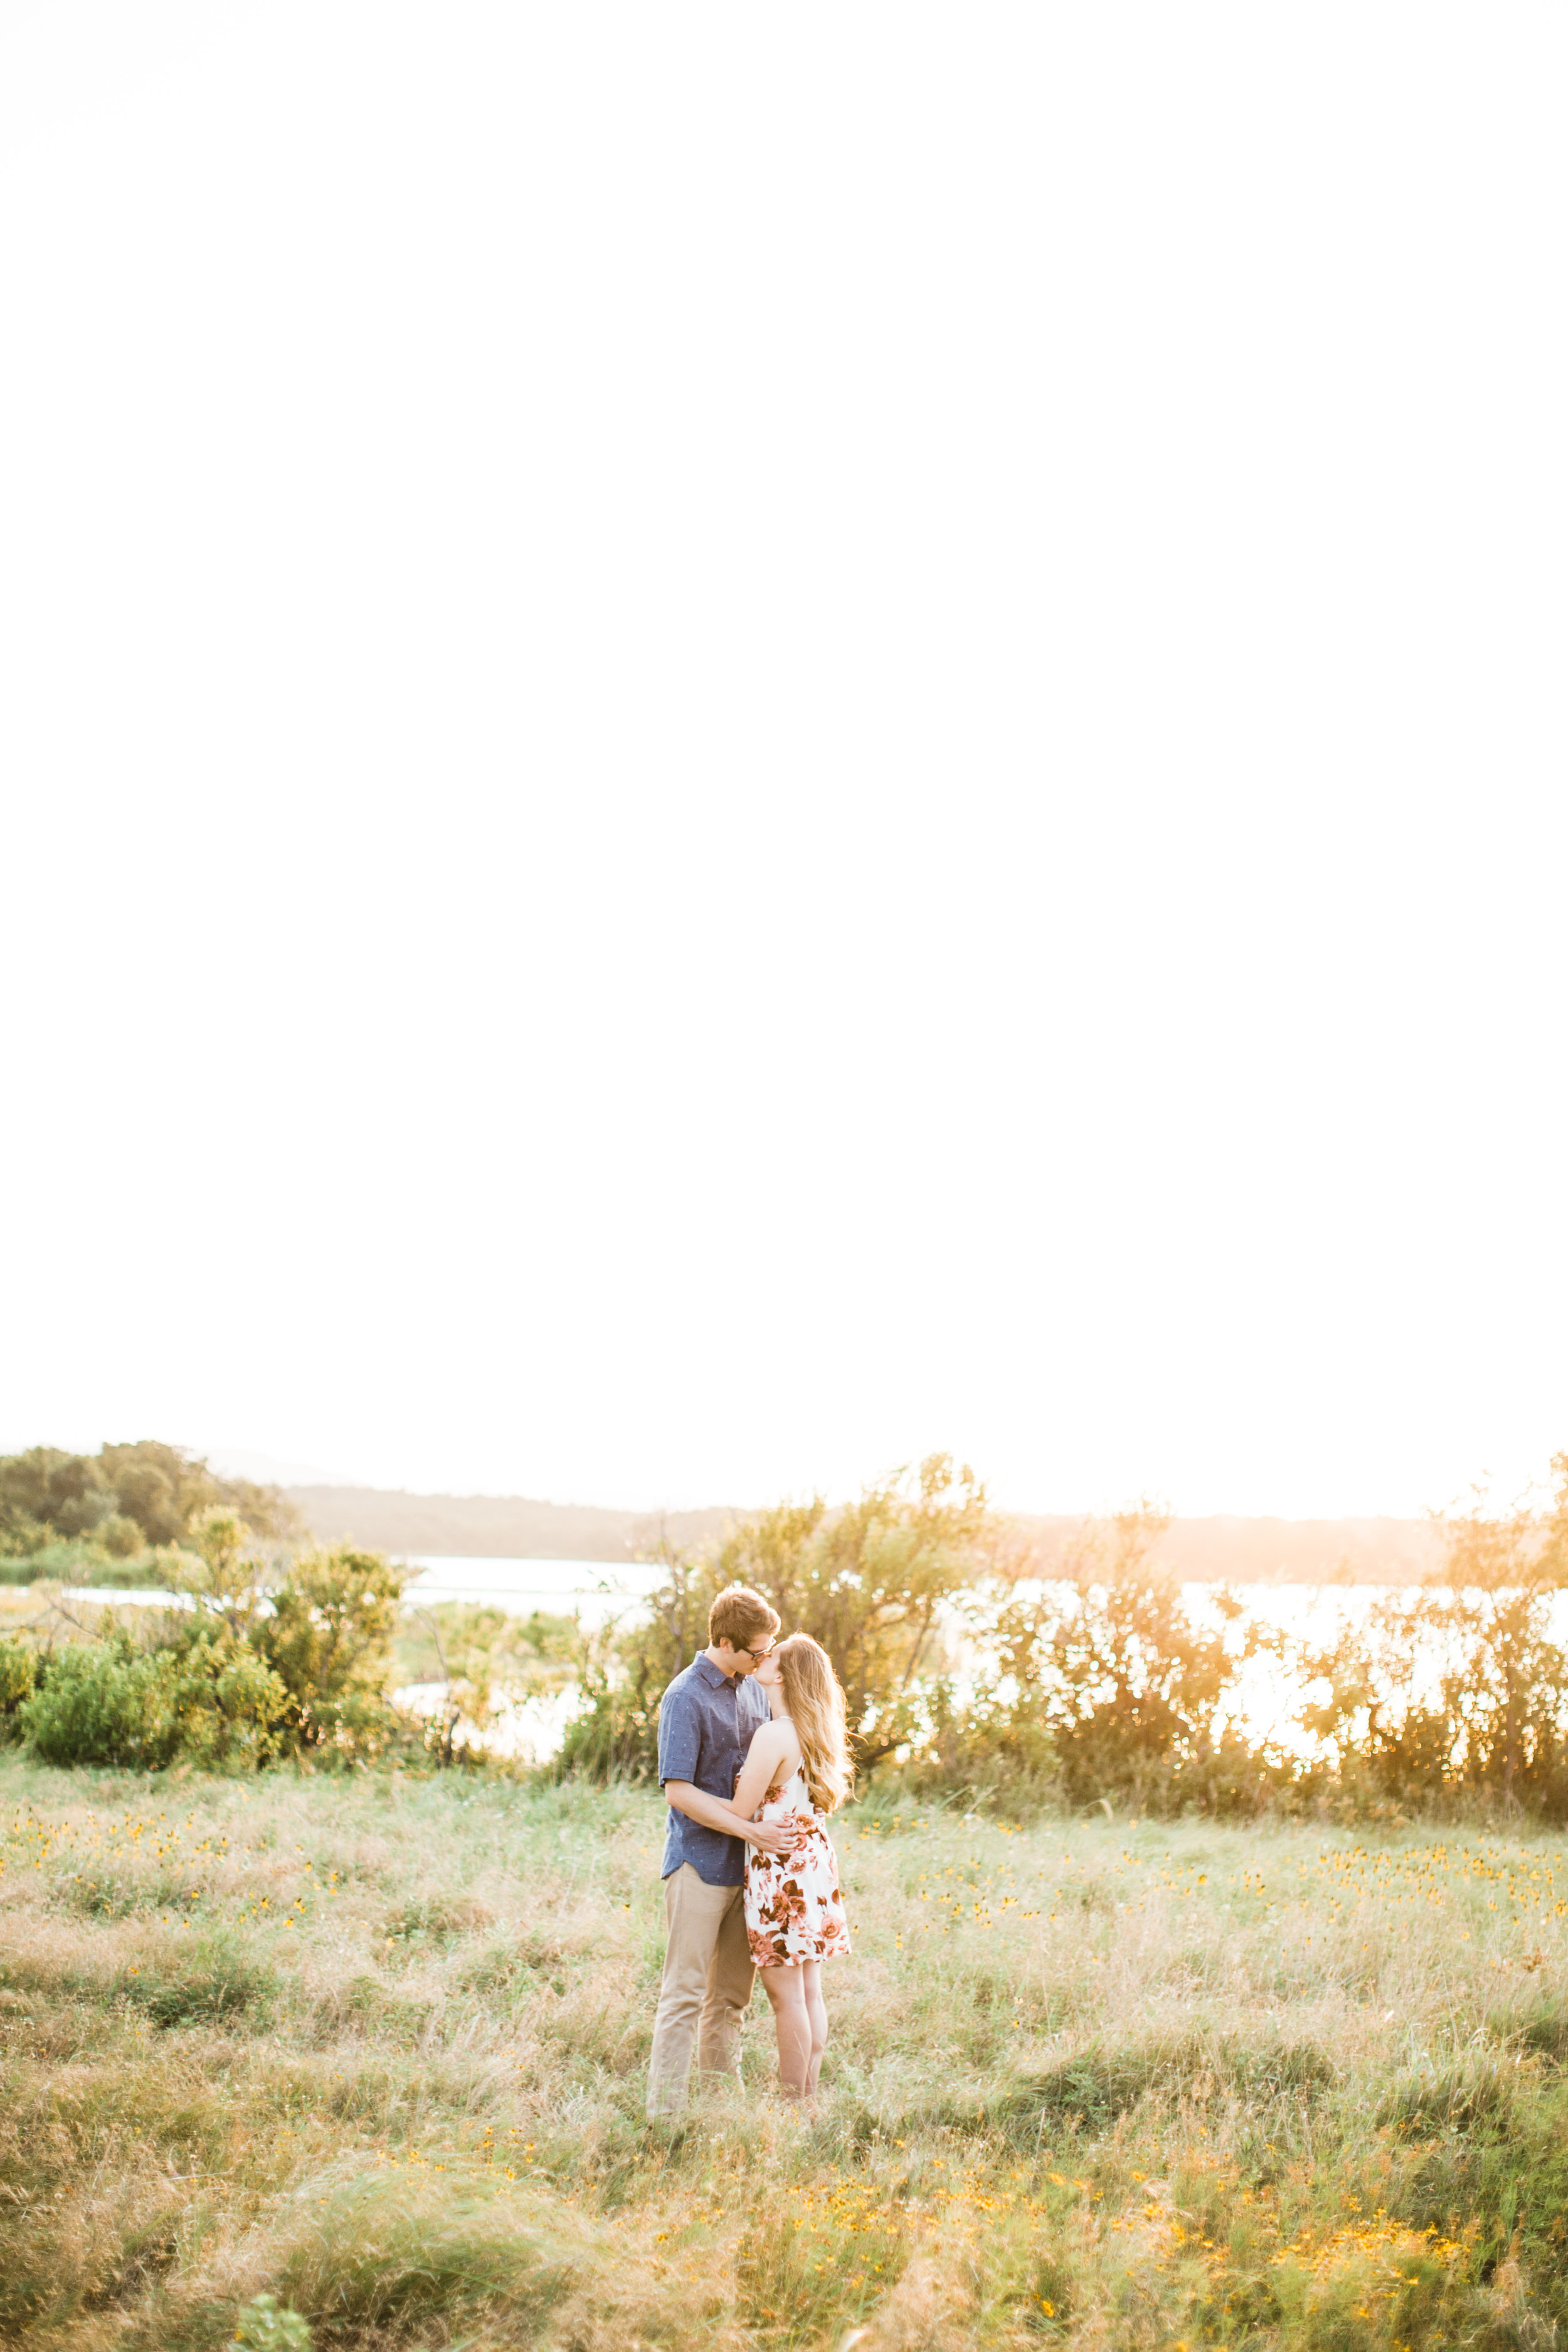 Claire_Michael_CarsynAbramsPhotography (56 of 123).jpg